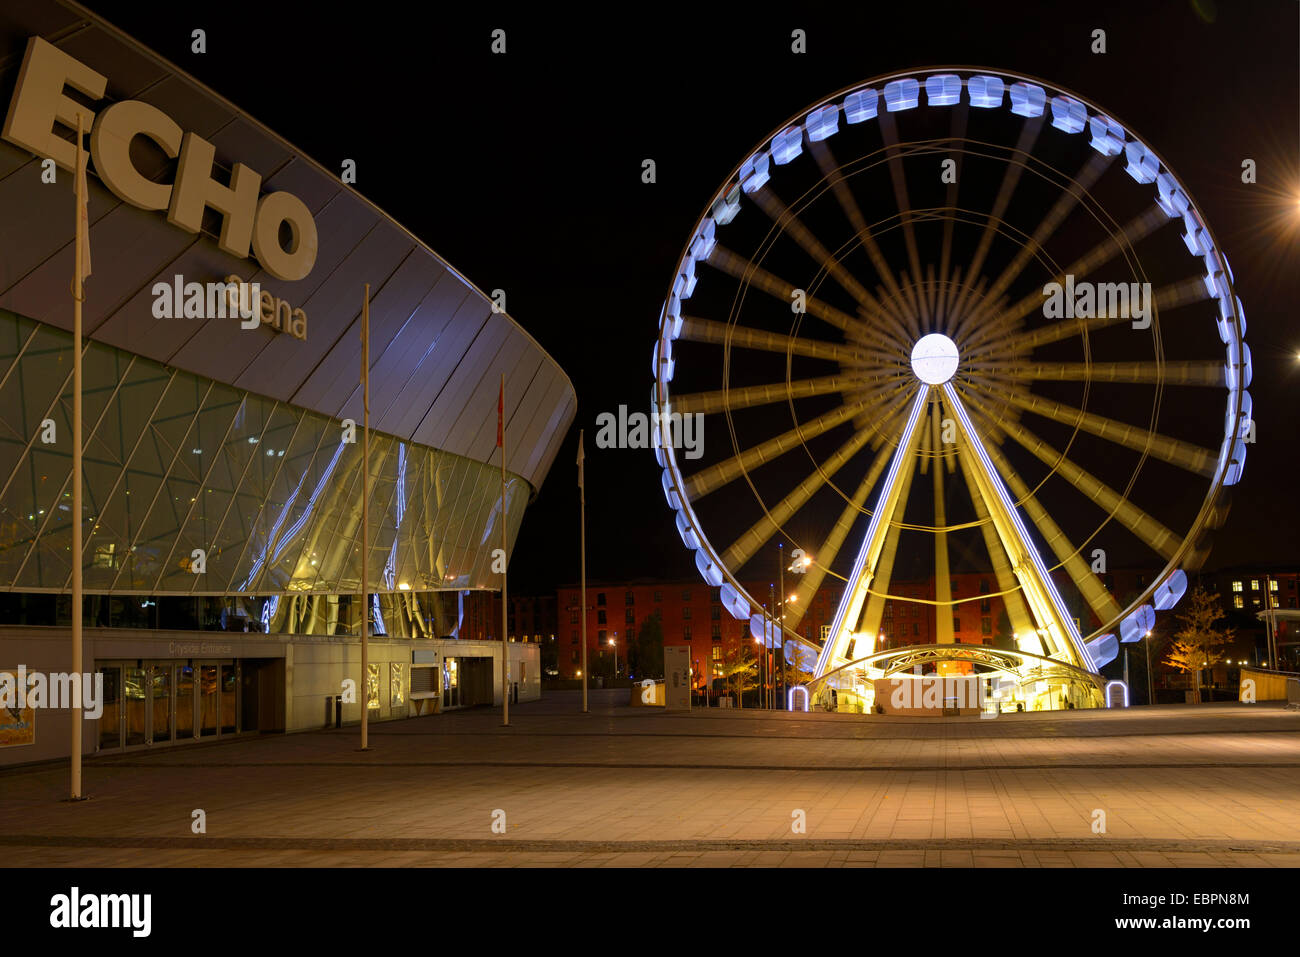 The Wheel of Liverpool and Echo Arena, Keel Wharf, Liverpool, Merseyside, England, United Kingdom, Europe - Stock Image